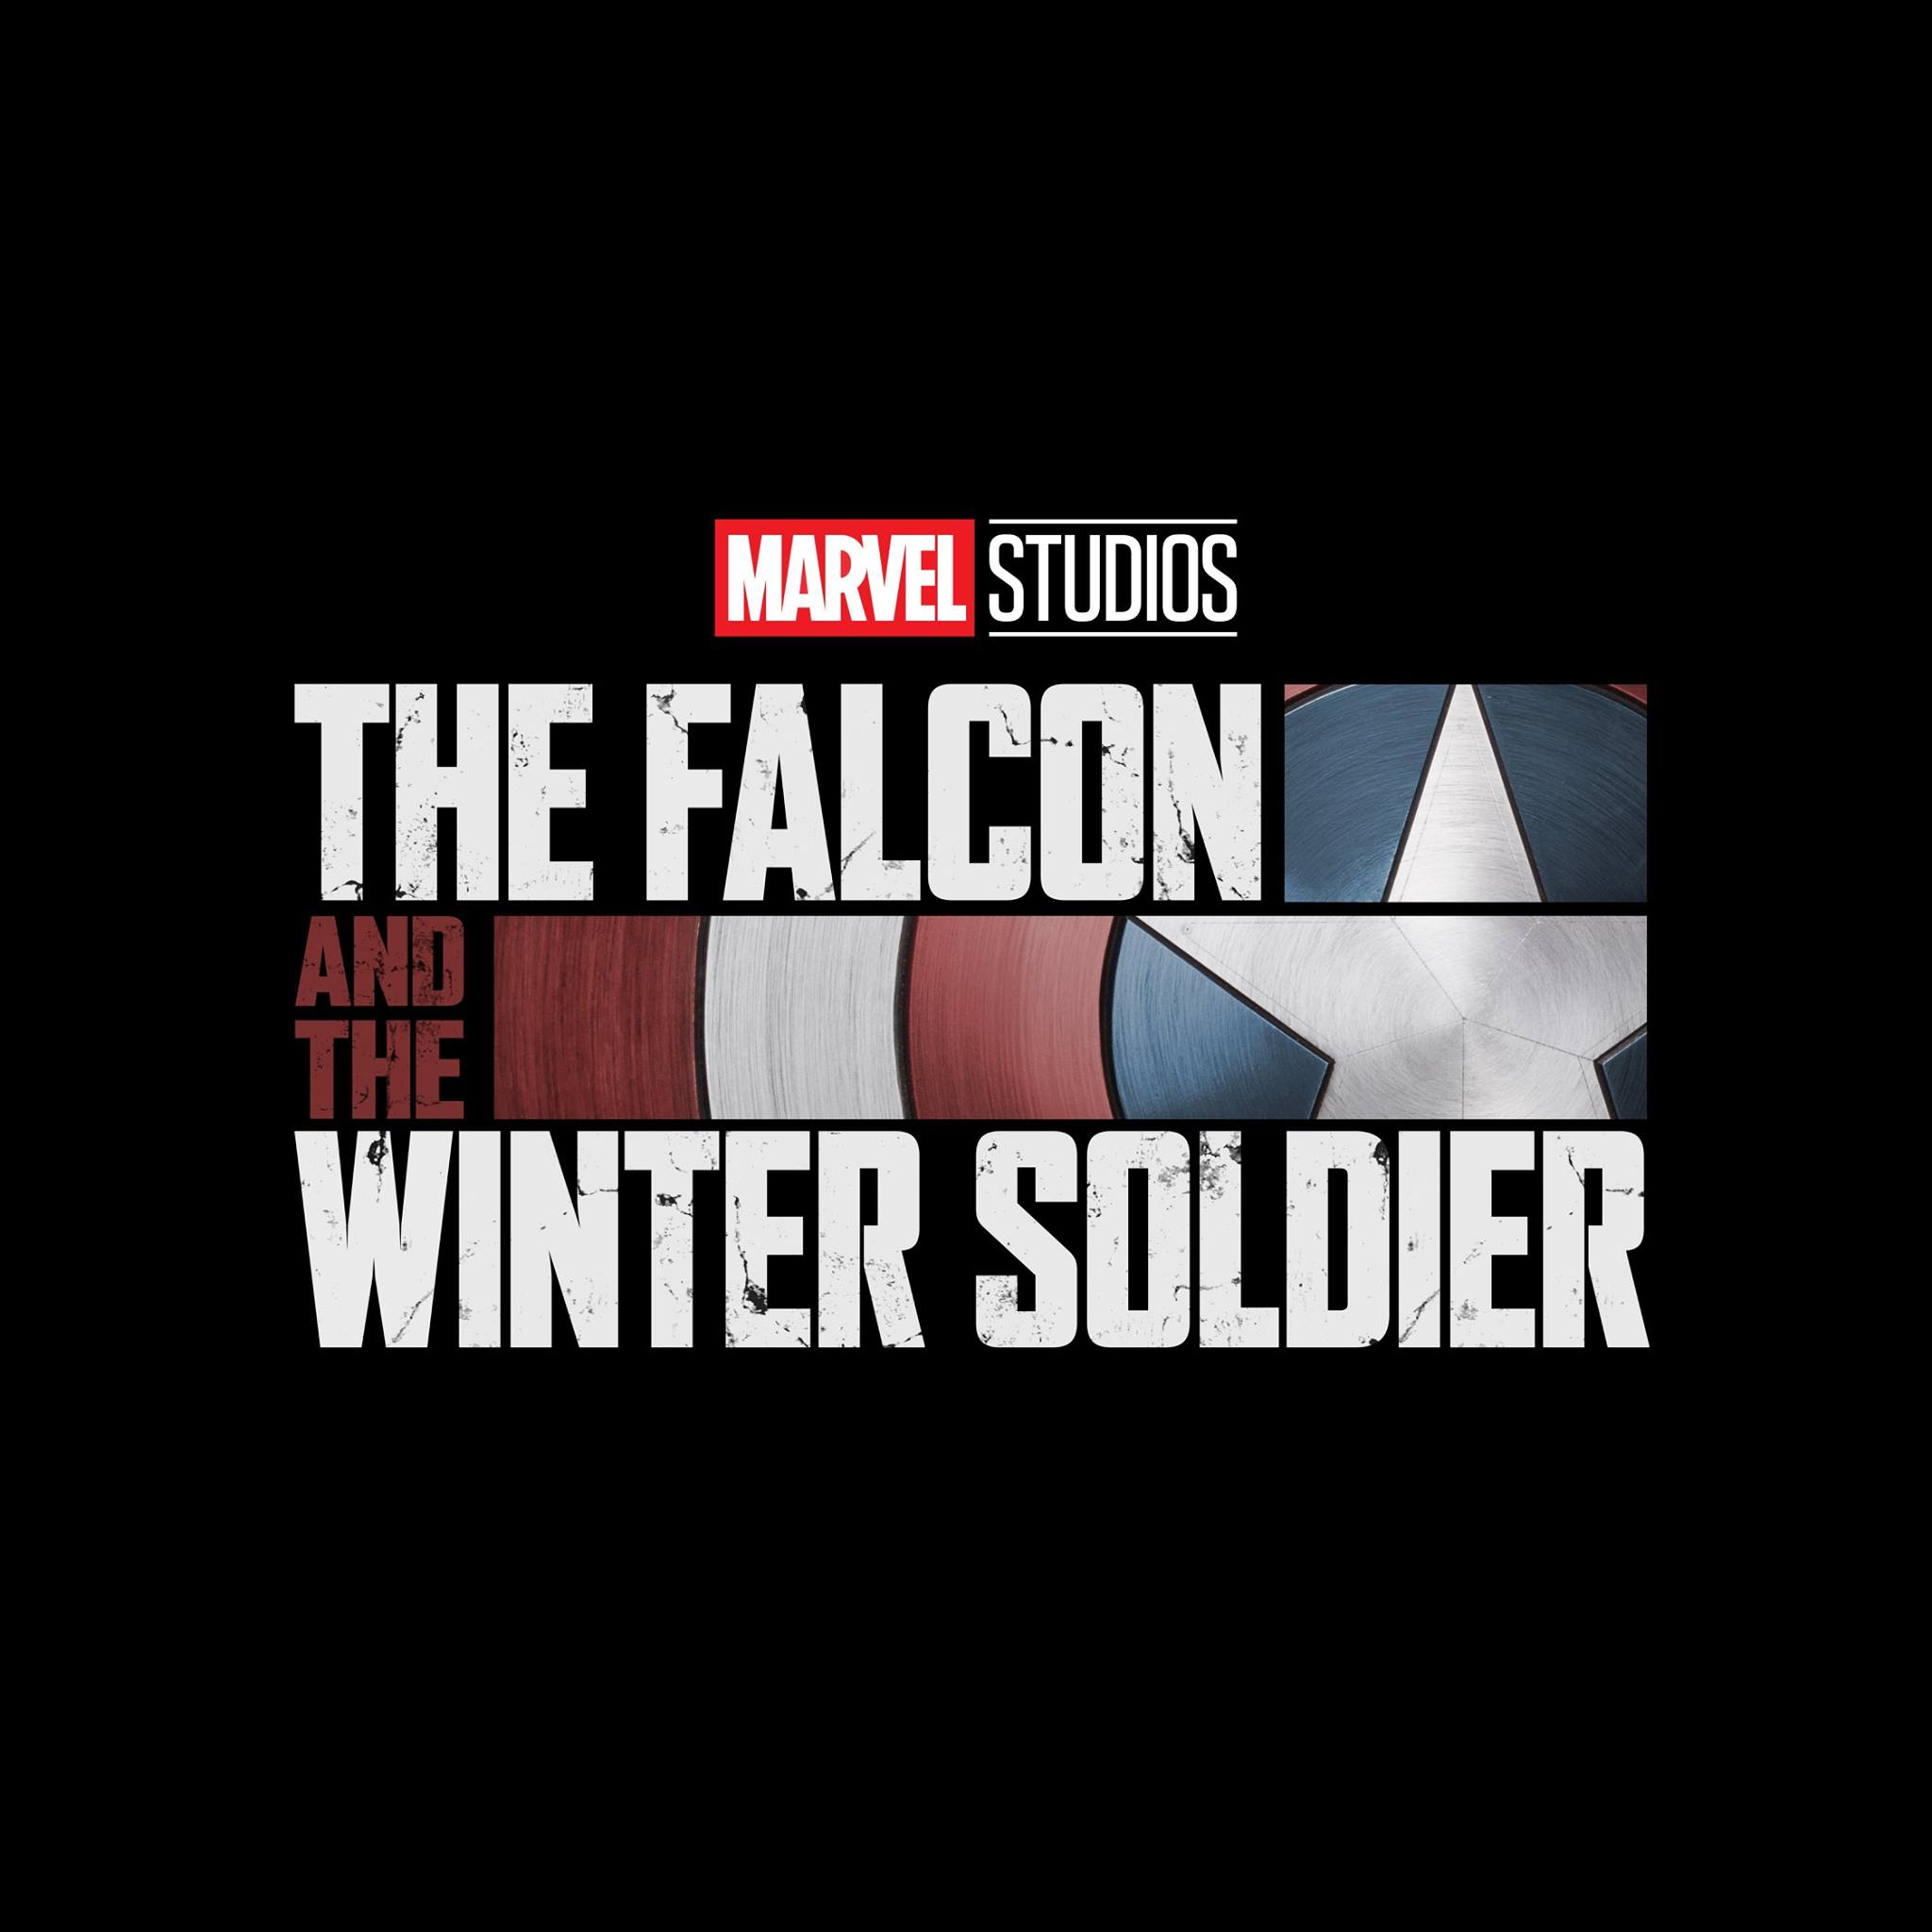 The Falcon and The Winter Soldier © Marvel Studios